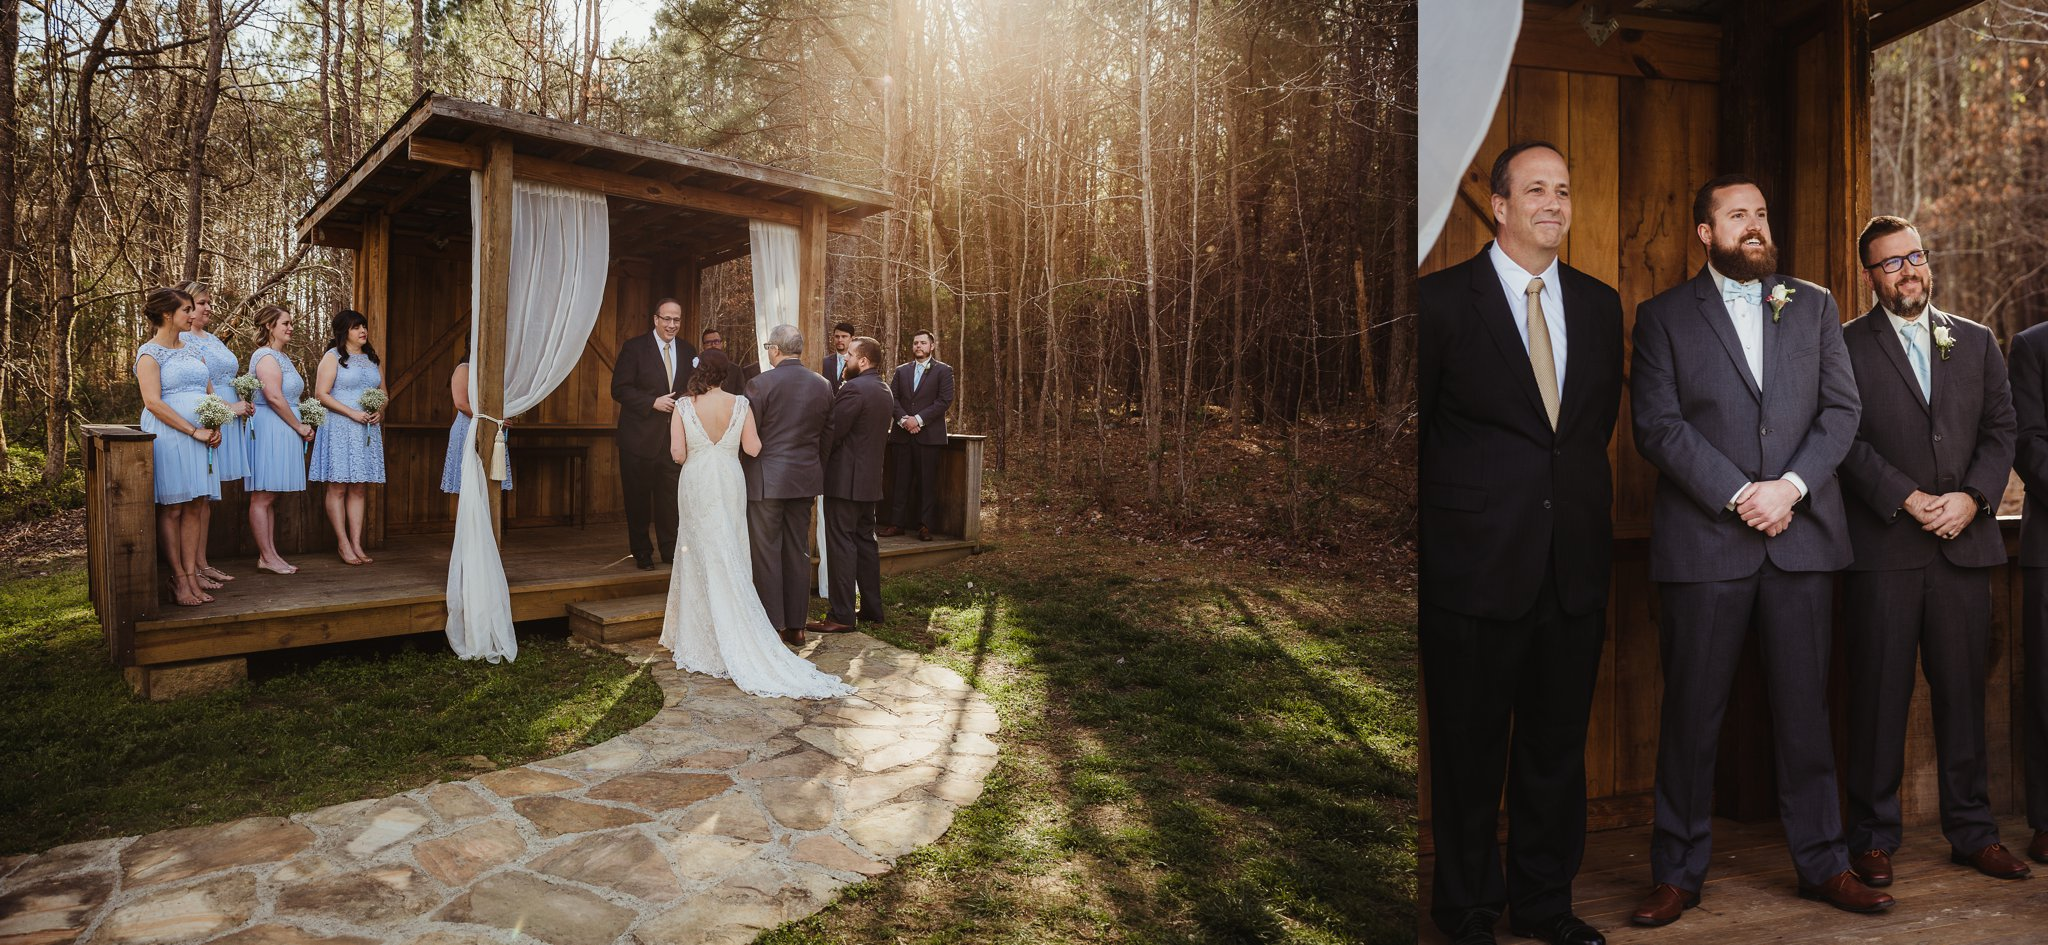 The bride and groom arrive at their ceremony spot at Carlee Farms in Oxford, NC, taken by Rose Trail Images.